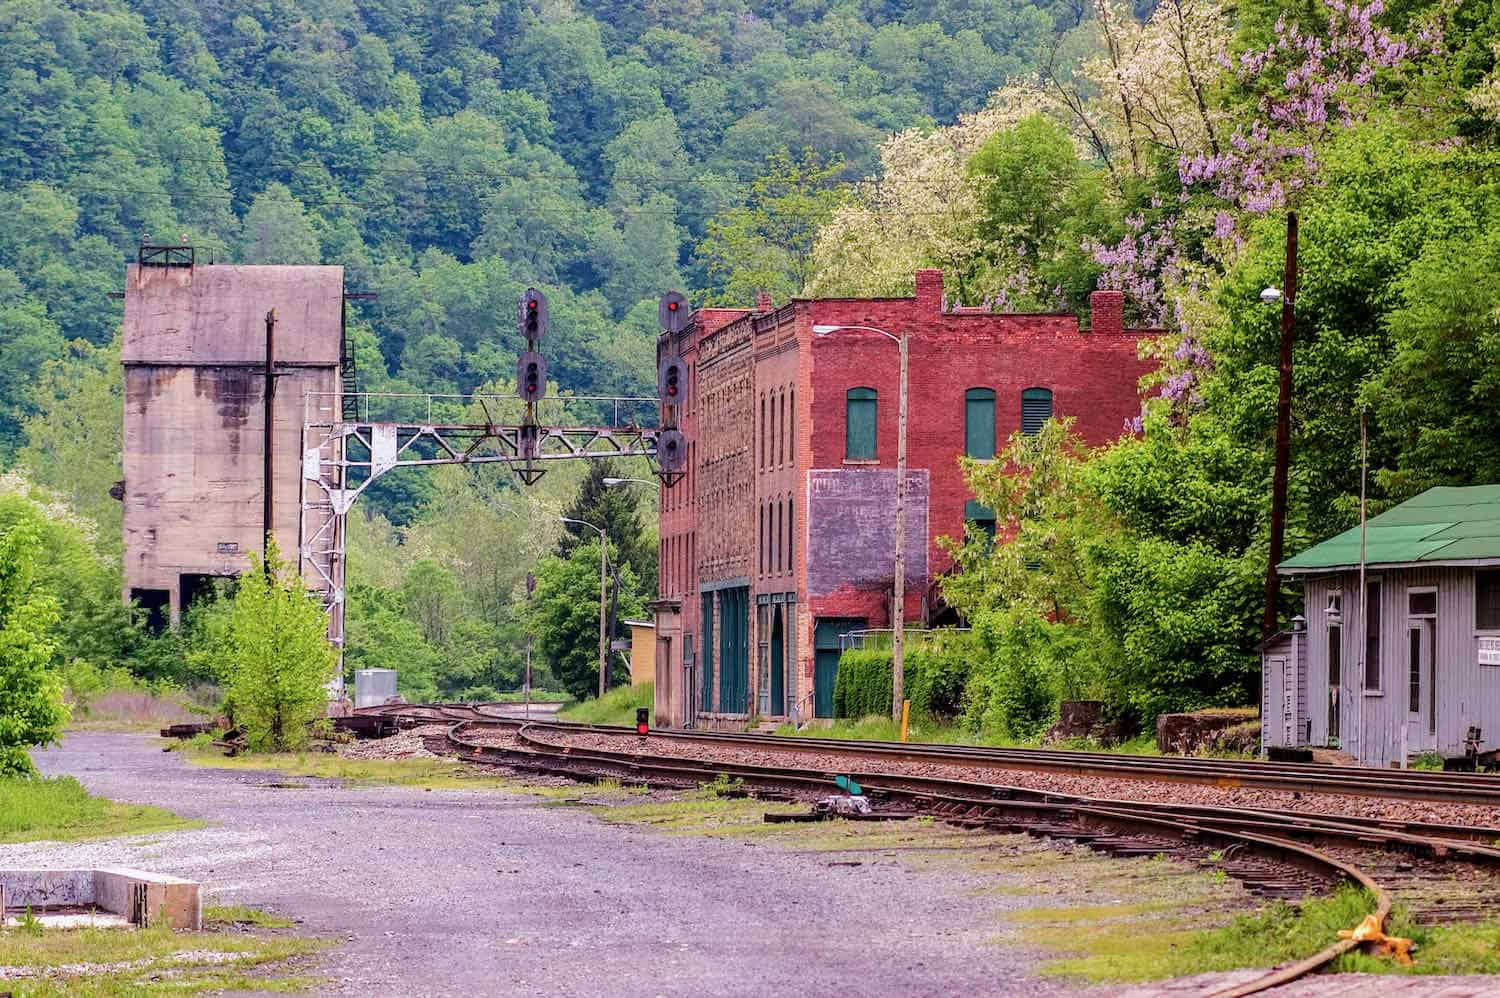 Railroad tracks curving between two abandoned buildings